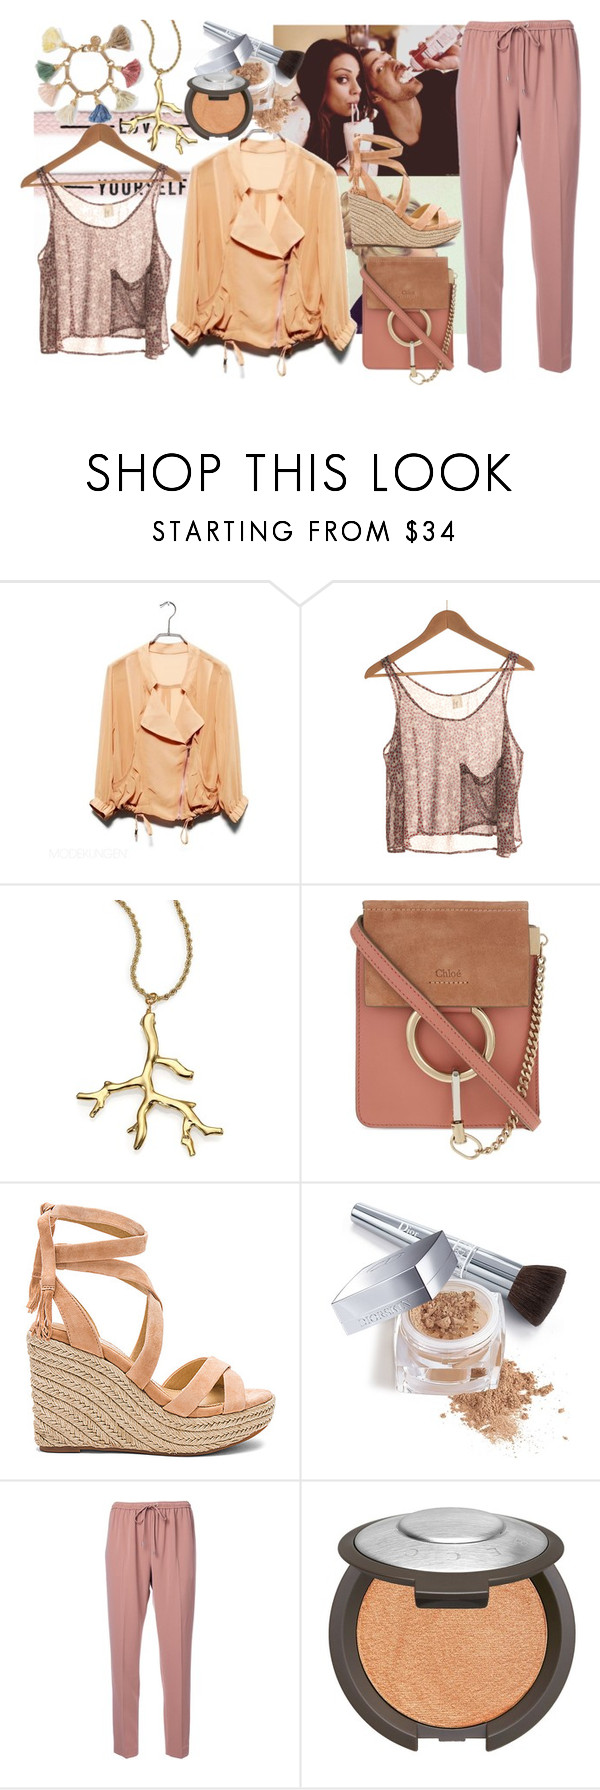 """""""new"""" by dodo85 on Polyvore featuring Kenneth Jay Lane, Chloé, Splendid, Christian Dior, Alexander Wang, Becca and Ben-Amun"""